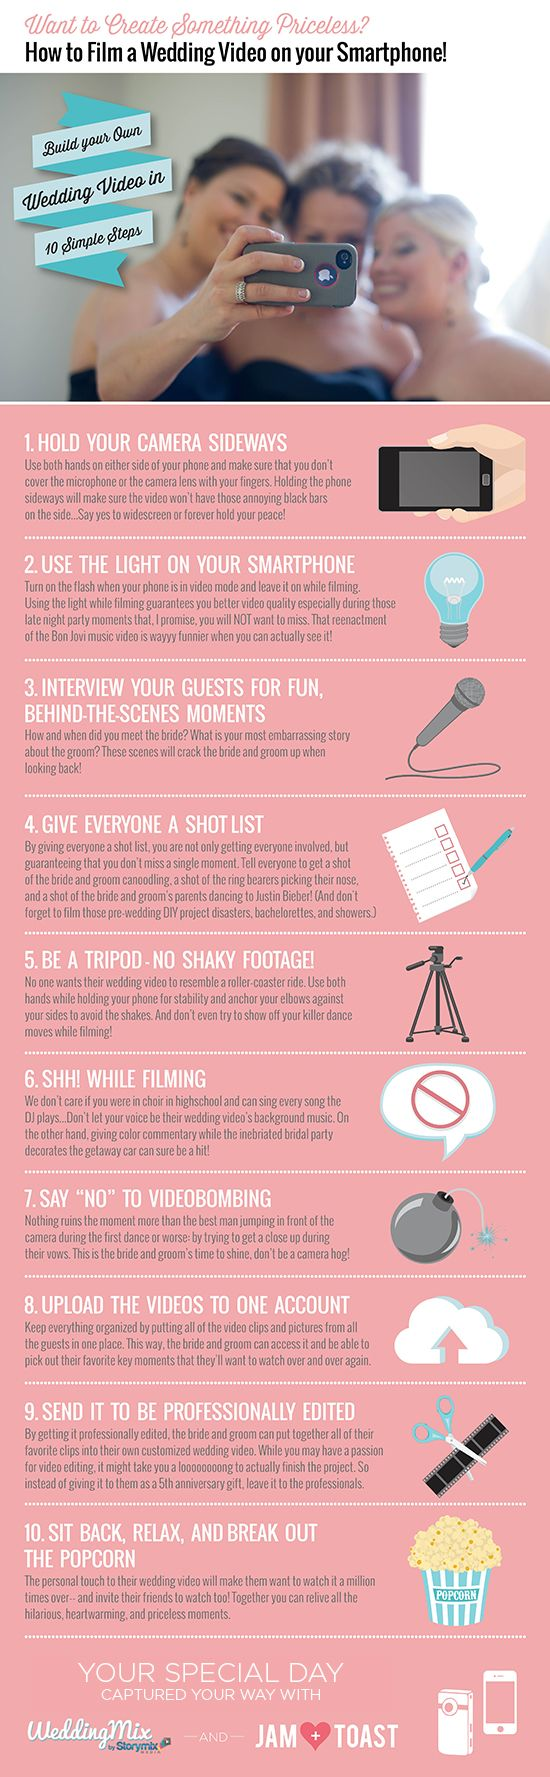 infographic how to create a wedding video with your smartphone